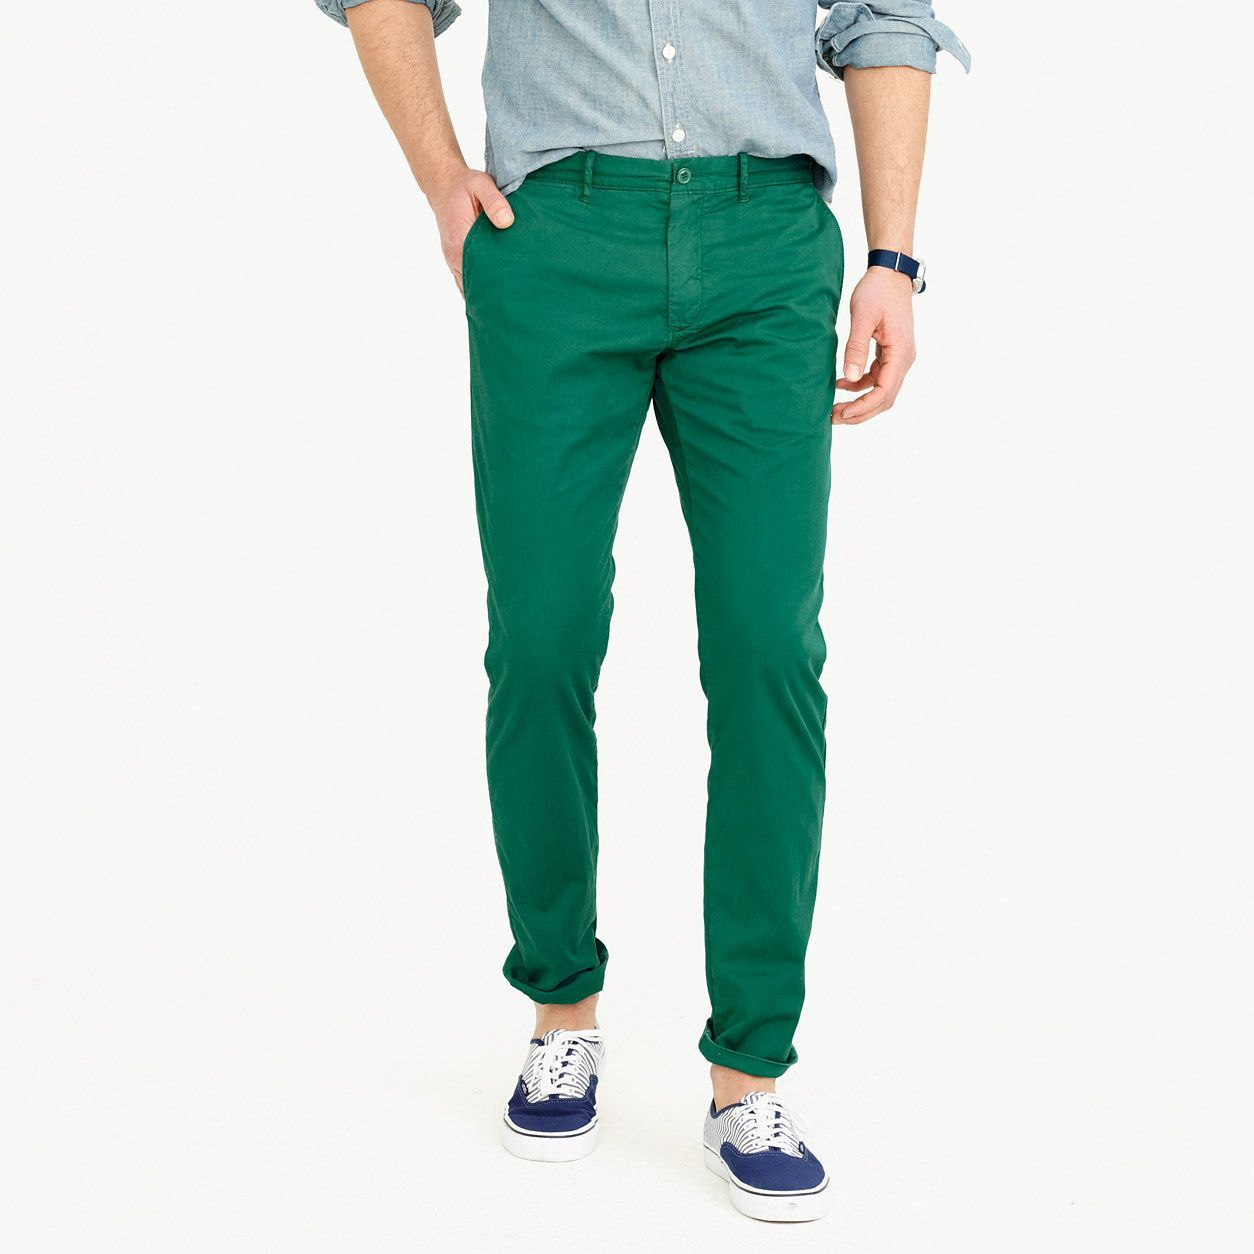 f4b9af23800f J.Crew Mens Lightweight Garment-Dyed Stretch Chino Pant In 484 Slim Fit  (Size 32x34)